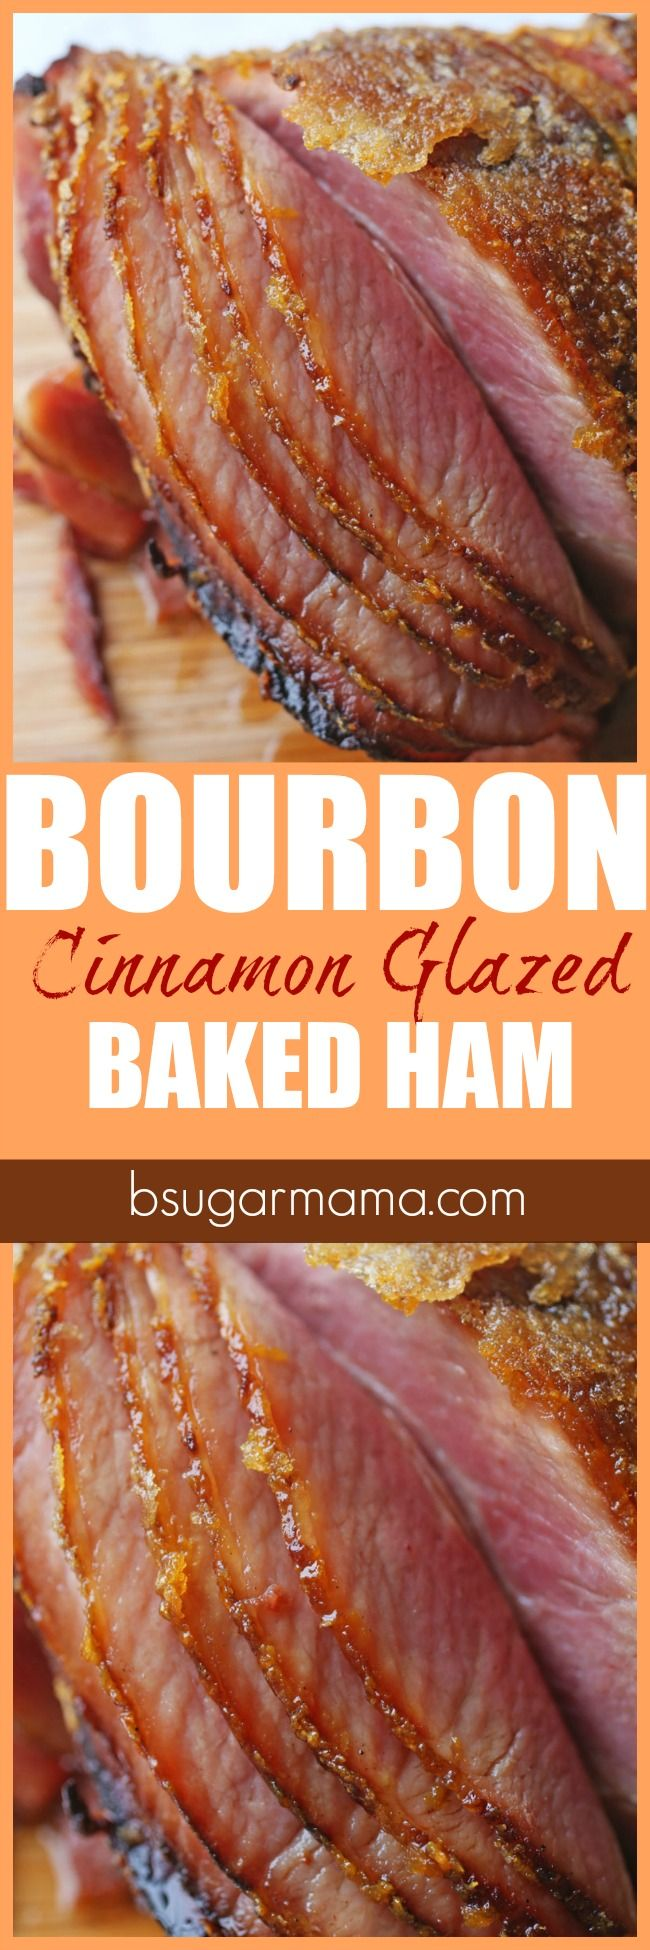 Check out this Bourbon and Cinnamon Glazed Baked Ham recipe. This baked ham recipe is perfect for your Thanksgiving dinner or Christmas dinner. #OHPork